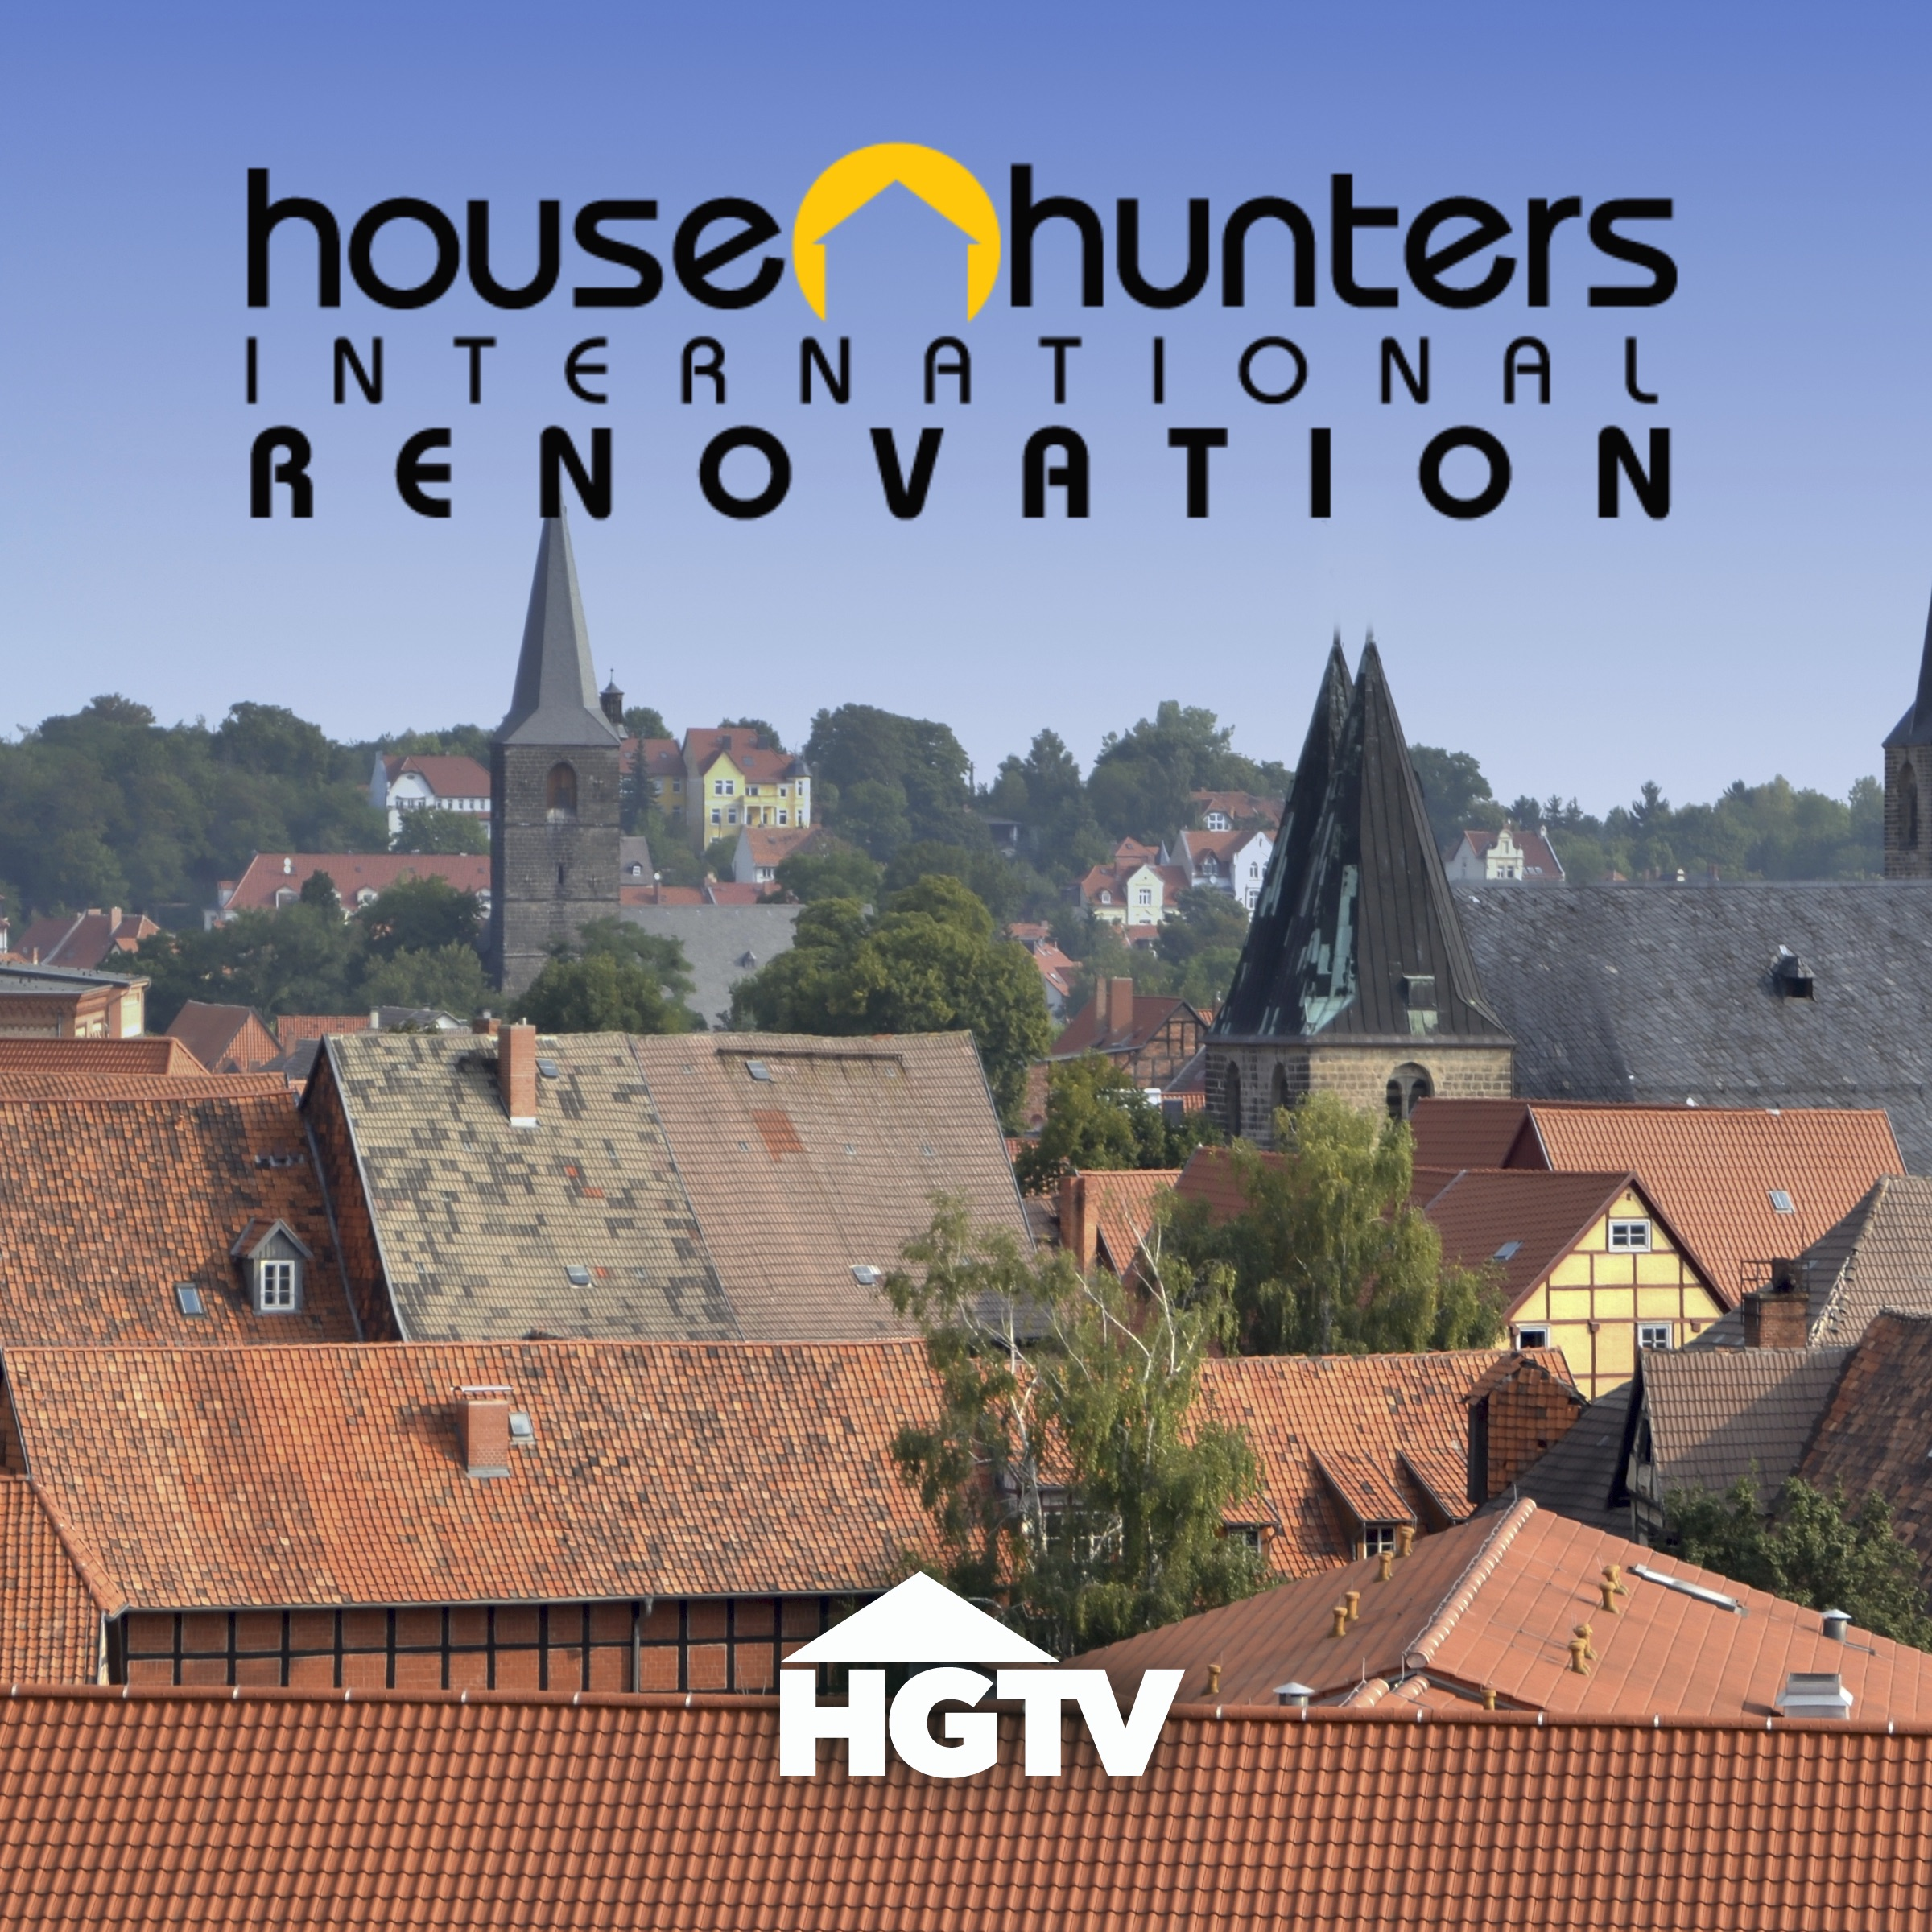 House Hunters Renovation: House Hunters International Renovation, Season 1 On ITunes